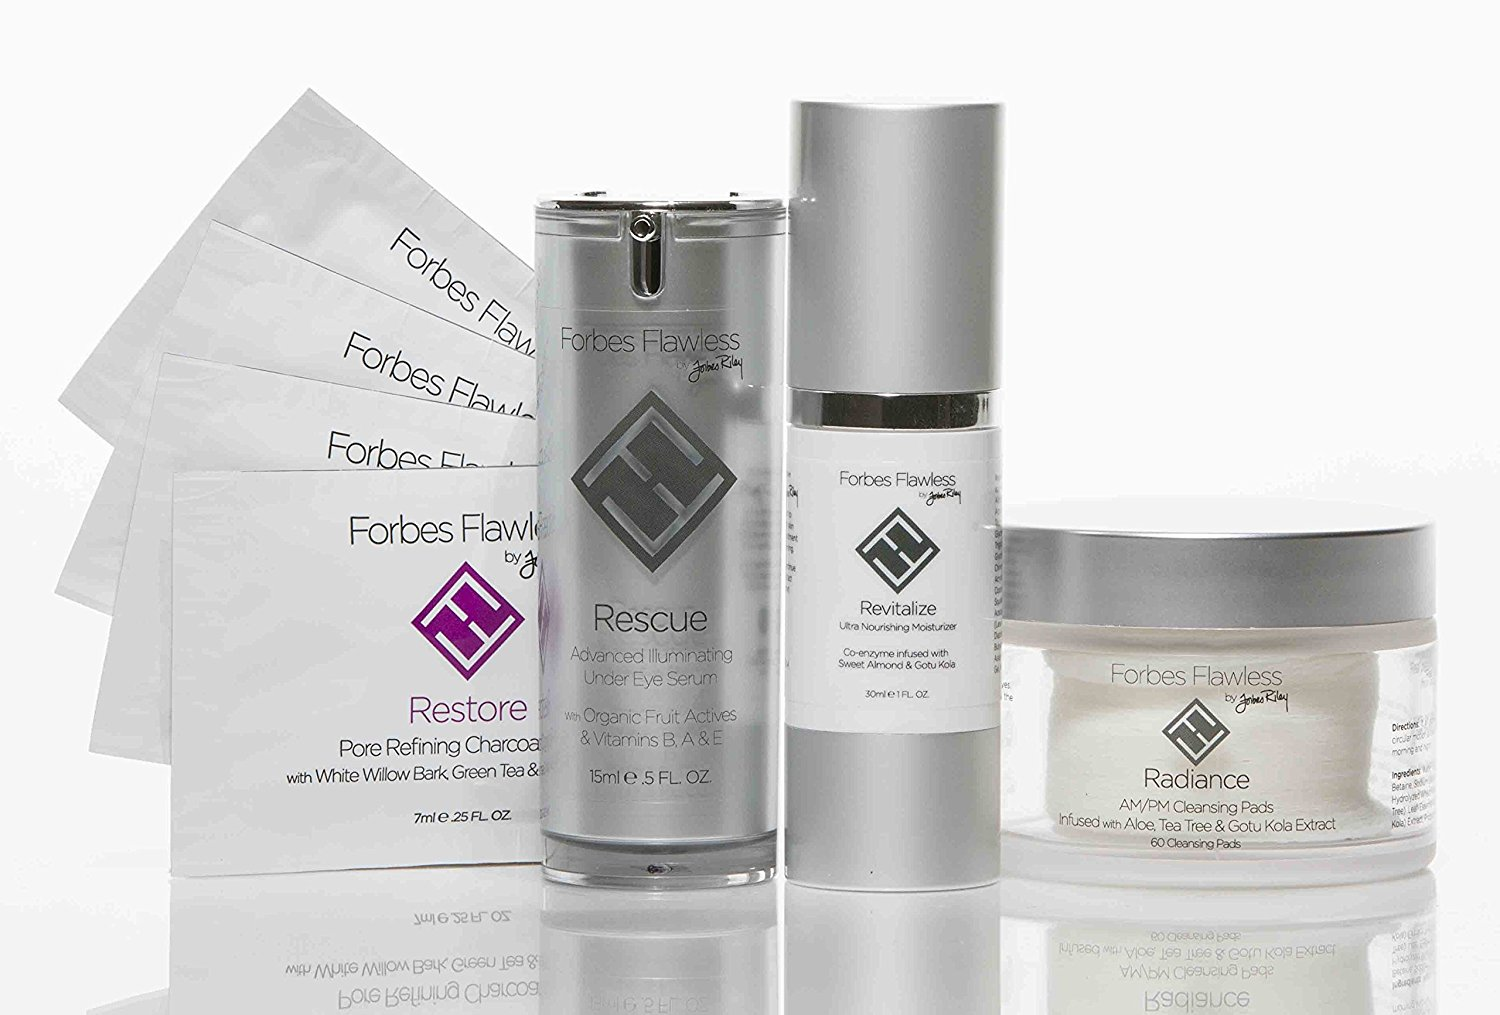 Forbes Flawless Refine - Step 3 in The Best Anti-Aging Skin Care Series - Brighten and Tighten With Powerful Collagen Boosters, Forbes Forever Flawless by Forbes Riley.